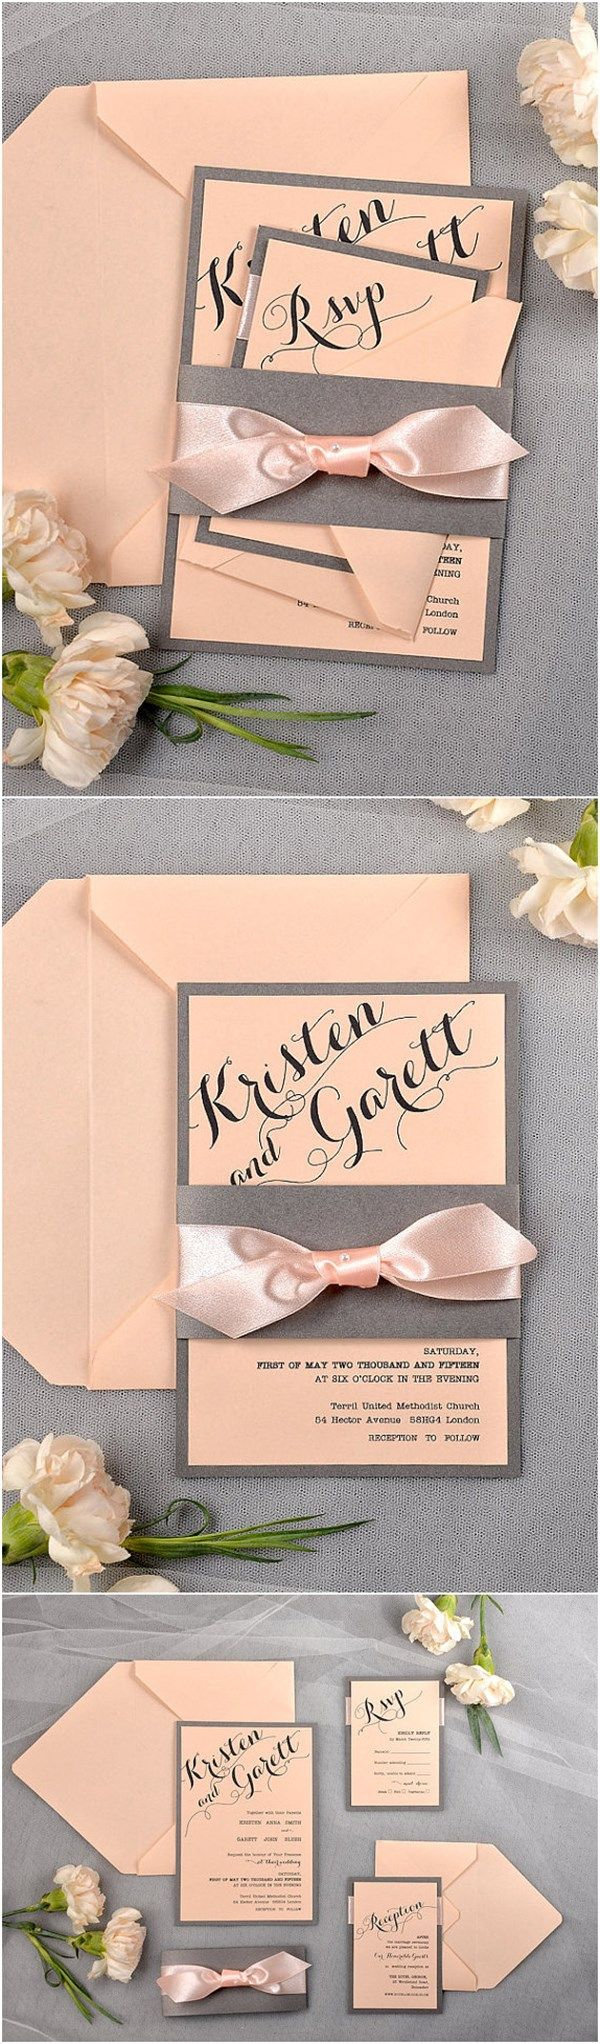 15 Our Absolutely Favorite Rustic Wedding Invitations | http://www.deerpearlflowers.com/rustic-wedding-invitations/